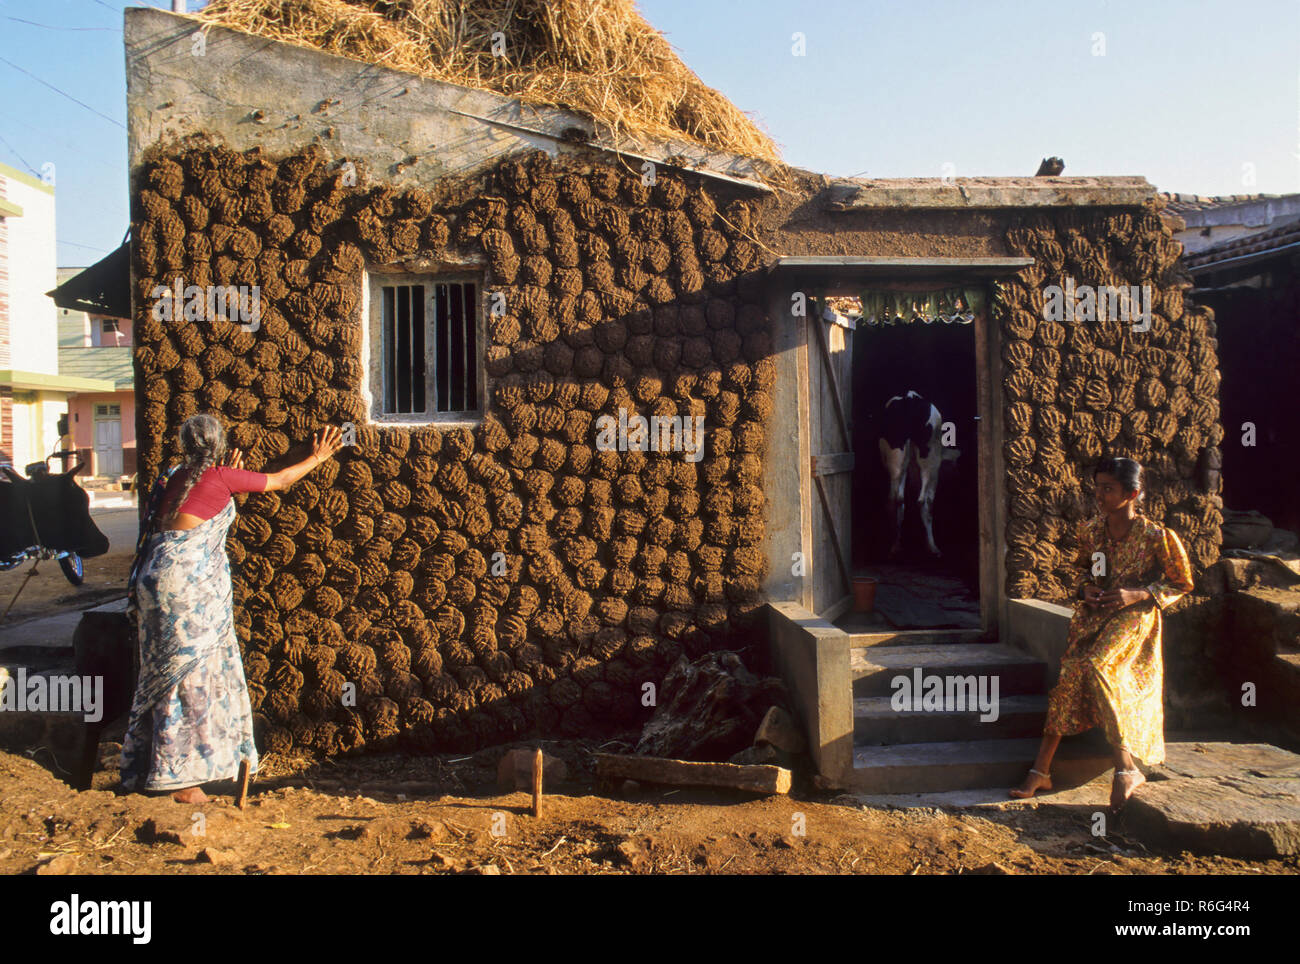 Image result for cow dung tamil houses